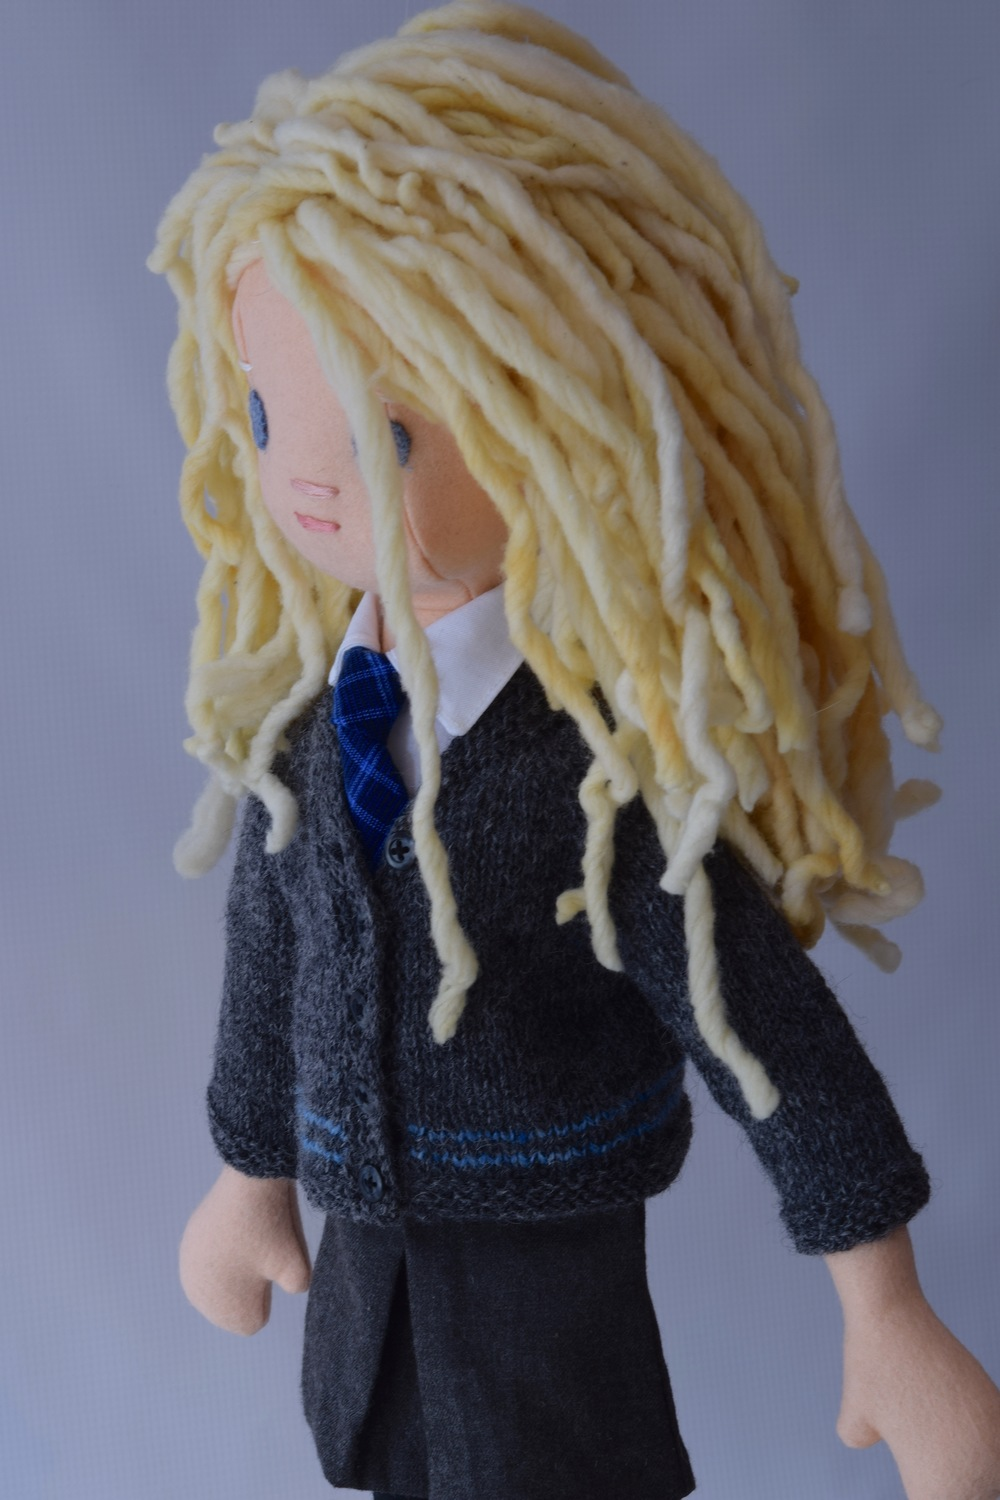 Luna Lovegood, A Harry Potter doll